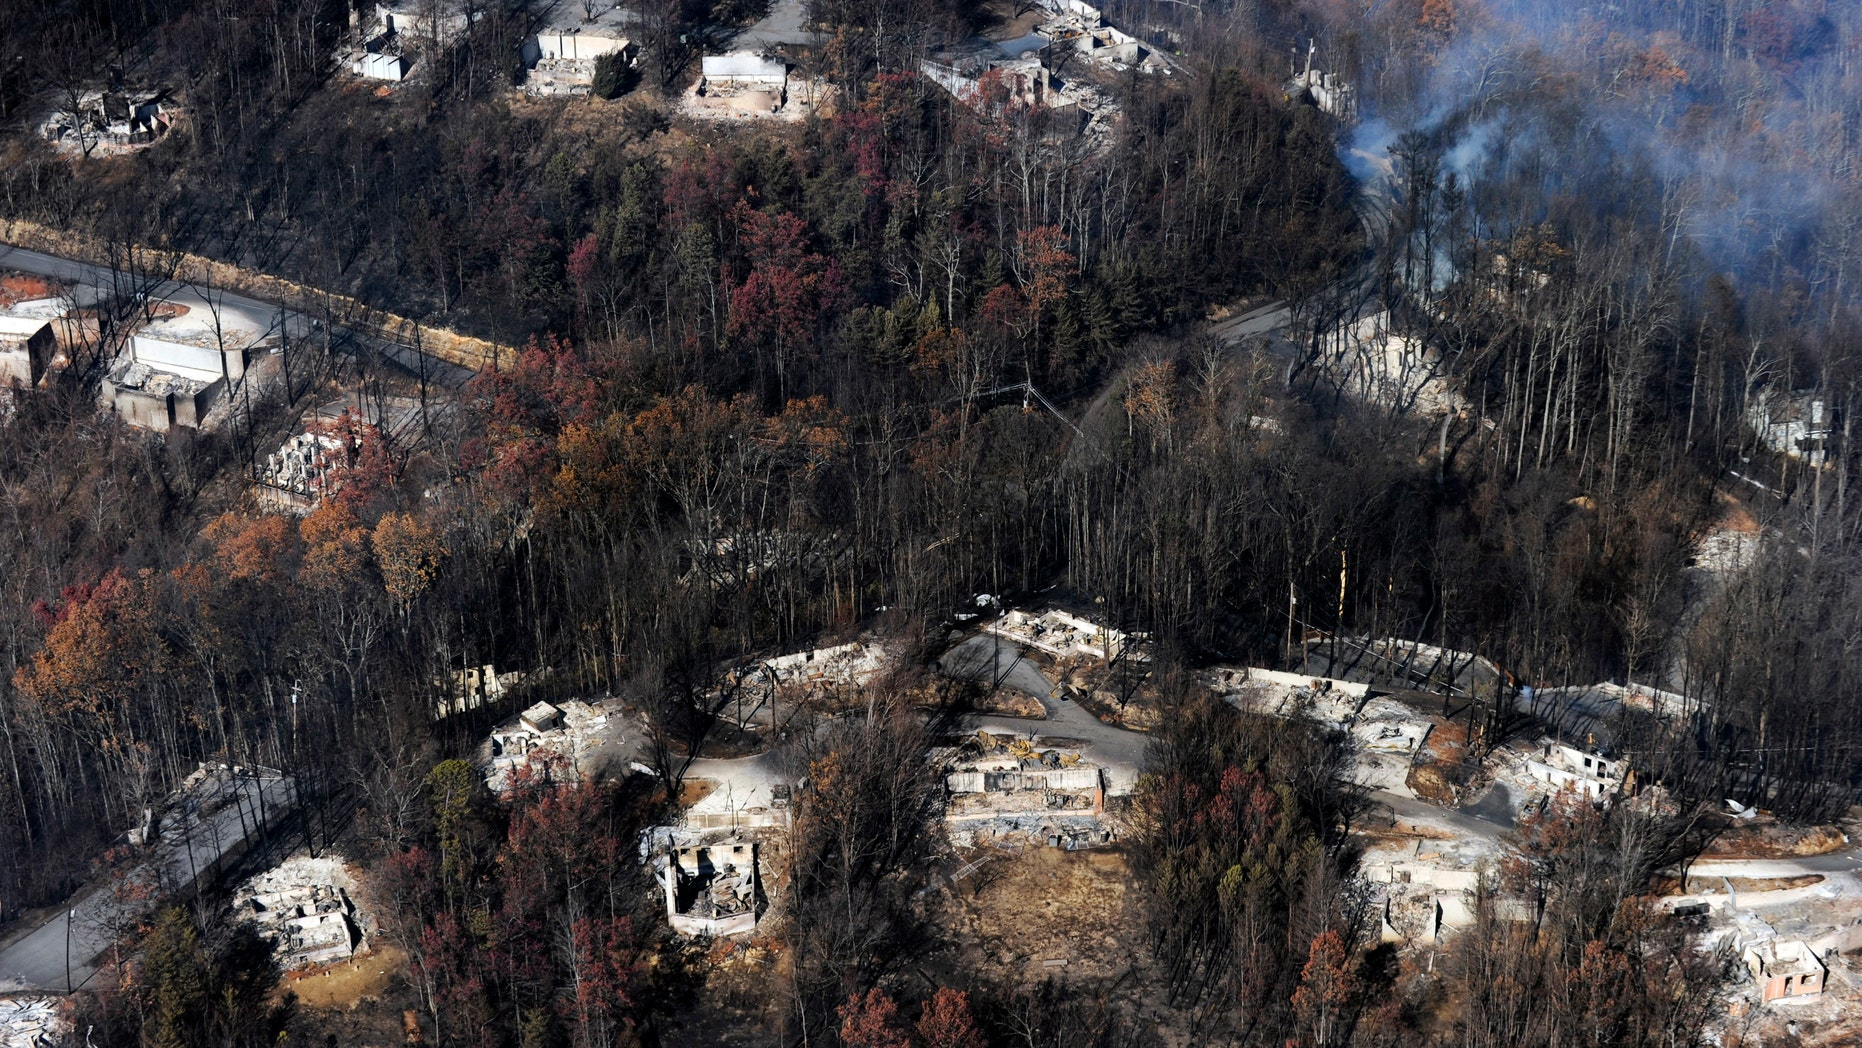 FILE - In this Tuesday, Nov. 29, 2016, file photo, smoke rises from destroyed homes, many burned down to the foundation, the day after a wildfire that hit Gatlinburg, Tenn. Experts said that escaping a fire-filled forest, as thousands did Nov. 28 in the Great Smoky Mountains, can be more traumatic than disasters such as hurricanes, floods or earthquakes. One reason: Flames that scorched neighborhoods in the Gatlinburg, Tenn., area spread so rapidly that people had no time to brace for it. (Paul Efird/Knoxville News Sentinel via AP, File)